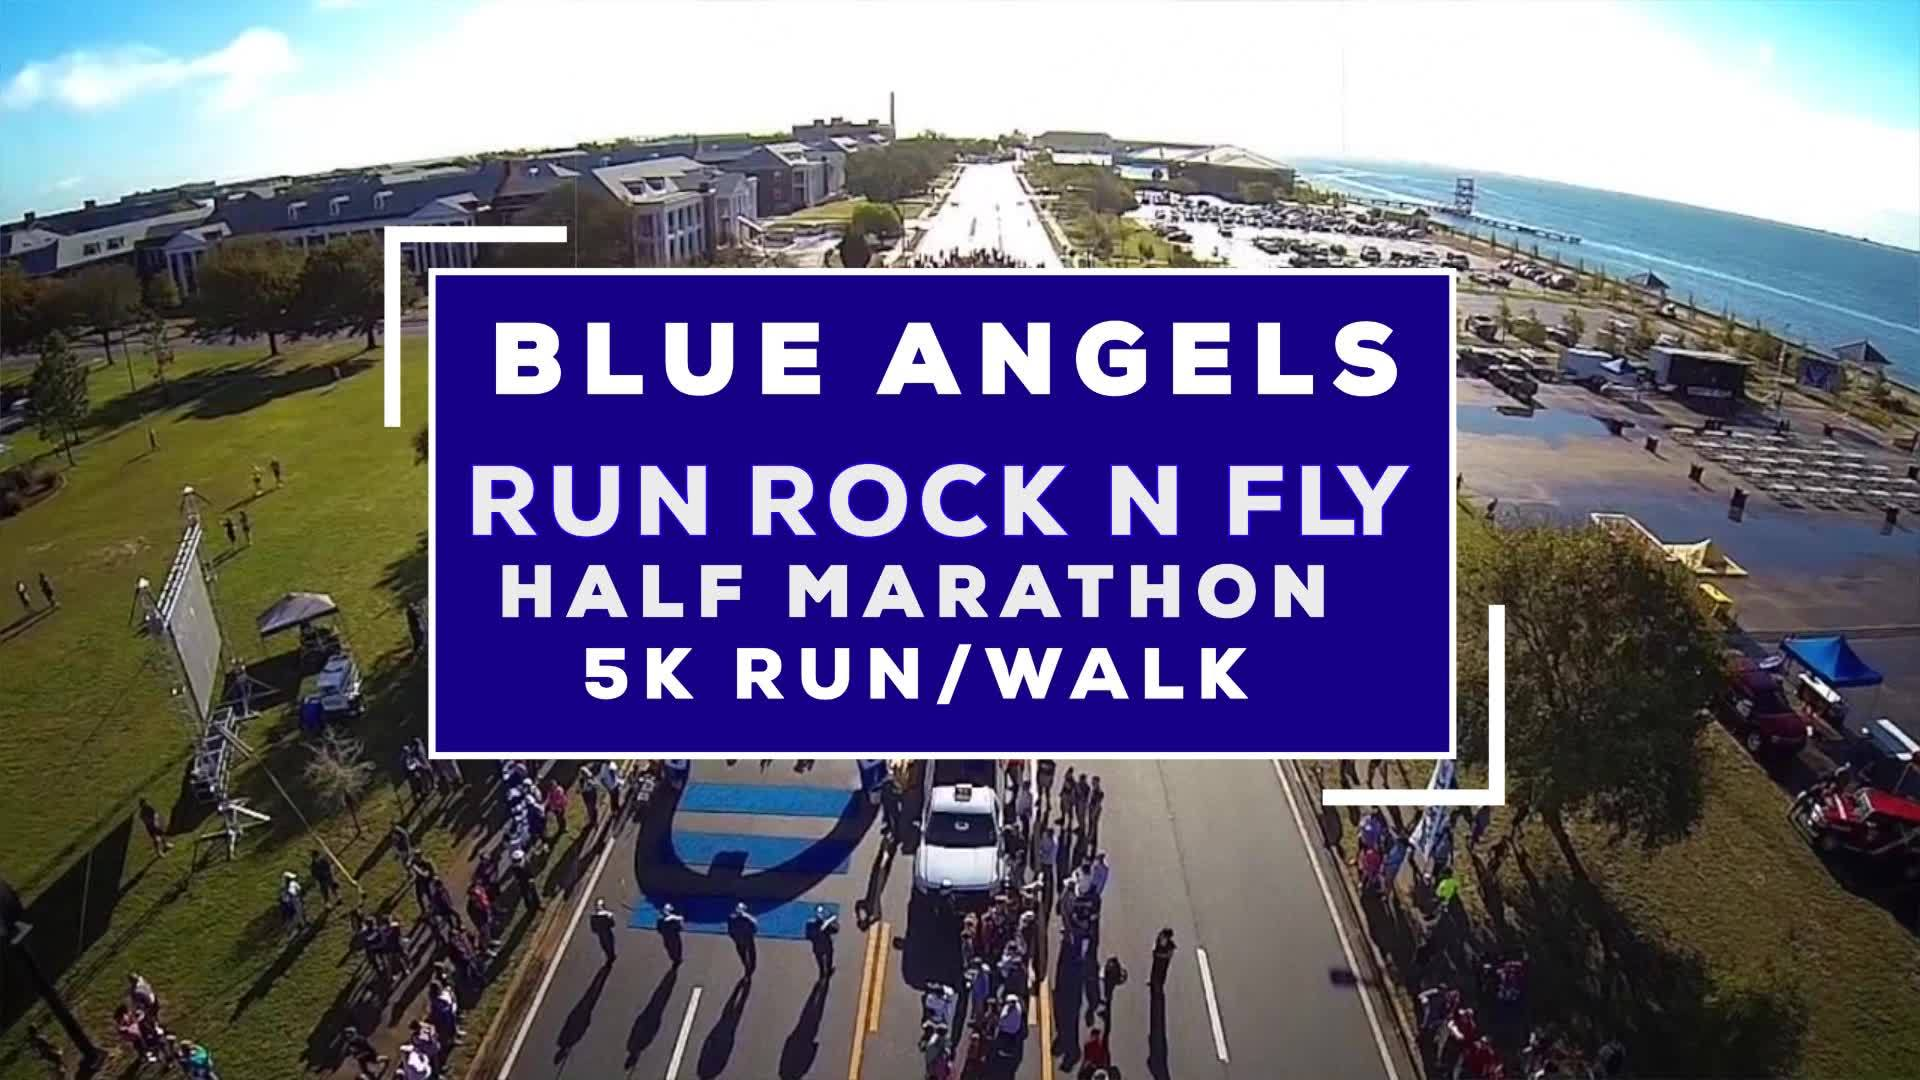 Blue Angels Rock 'N Fly 1/2 Marathon and 5K